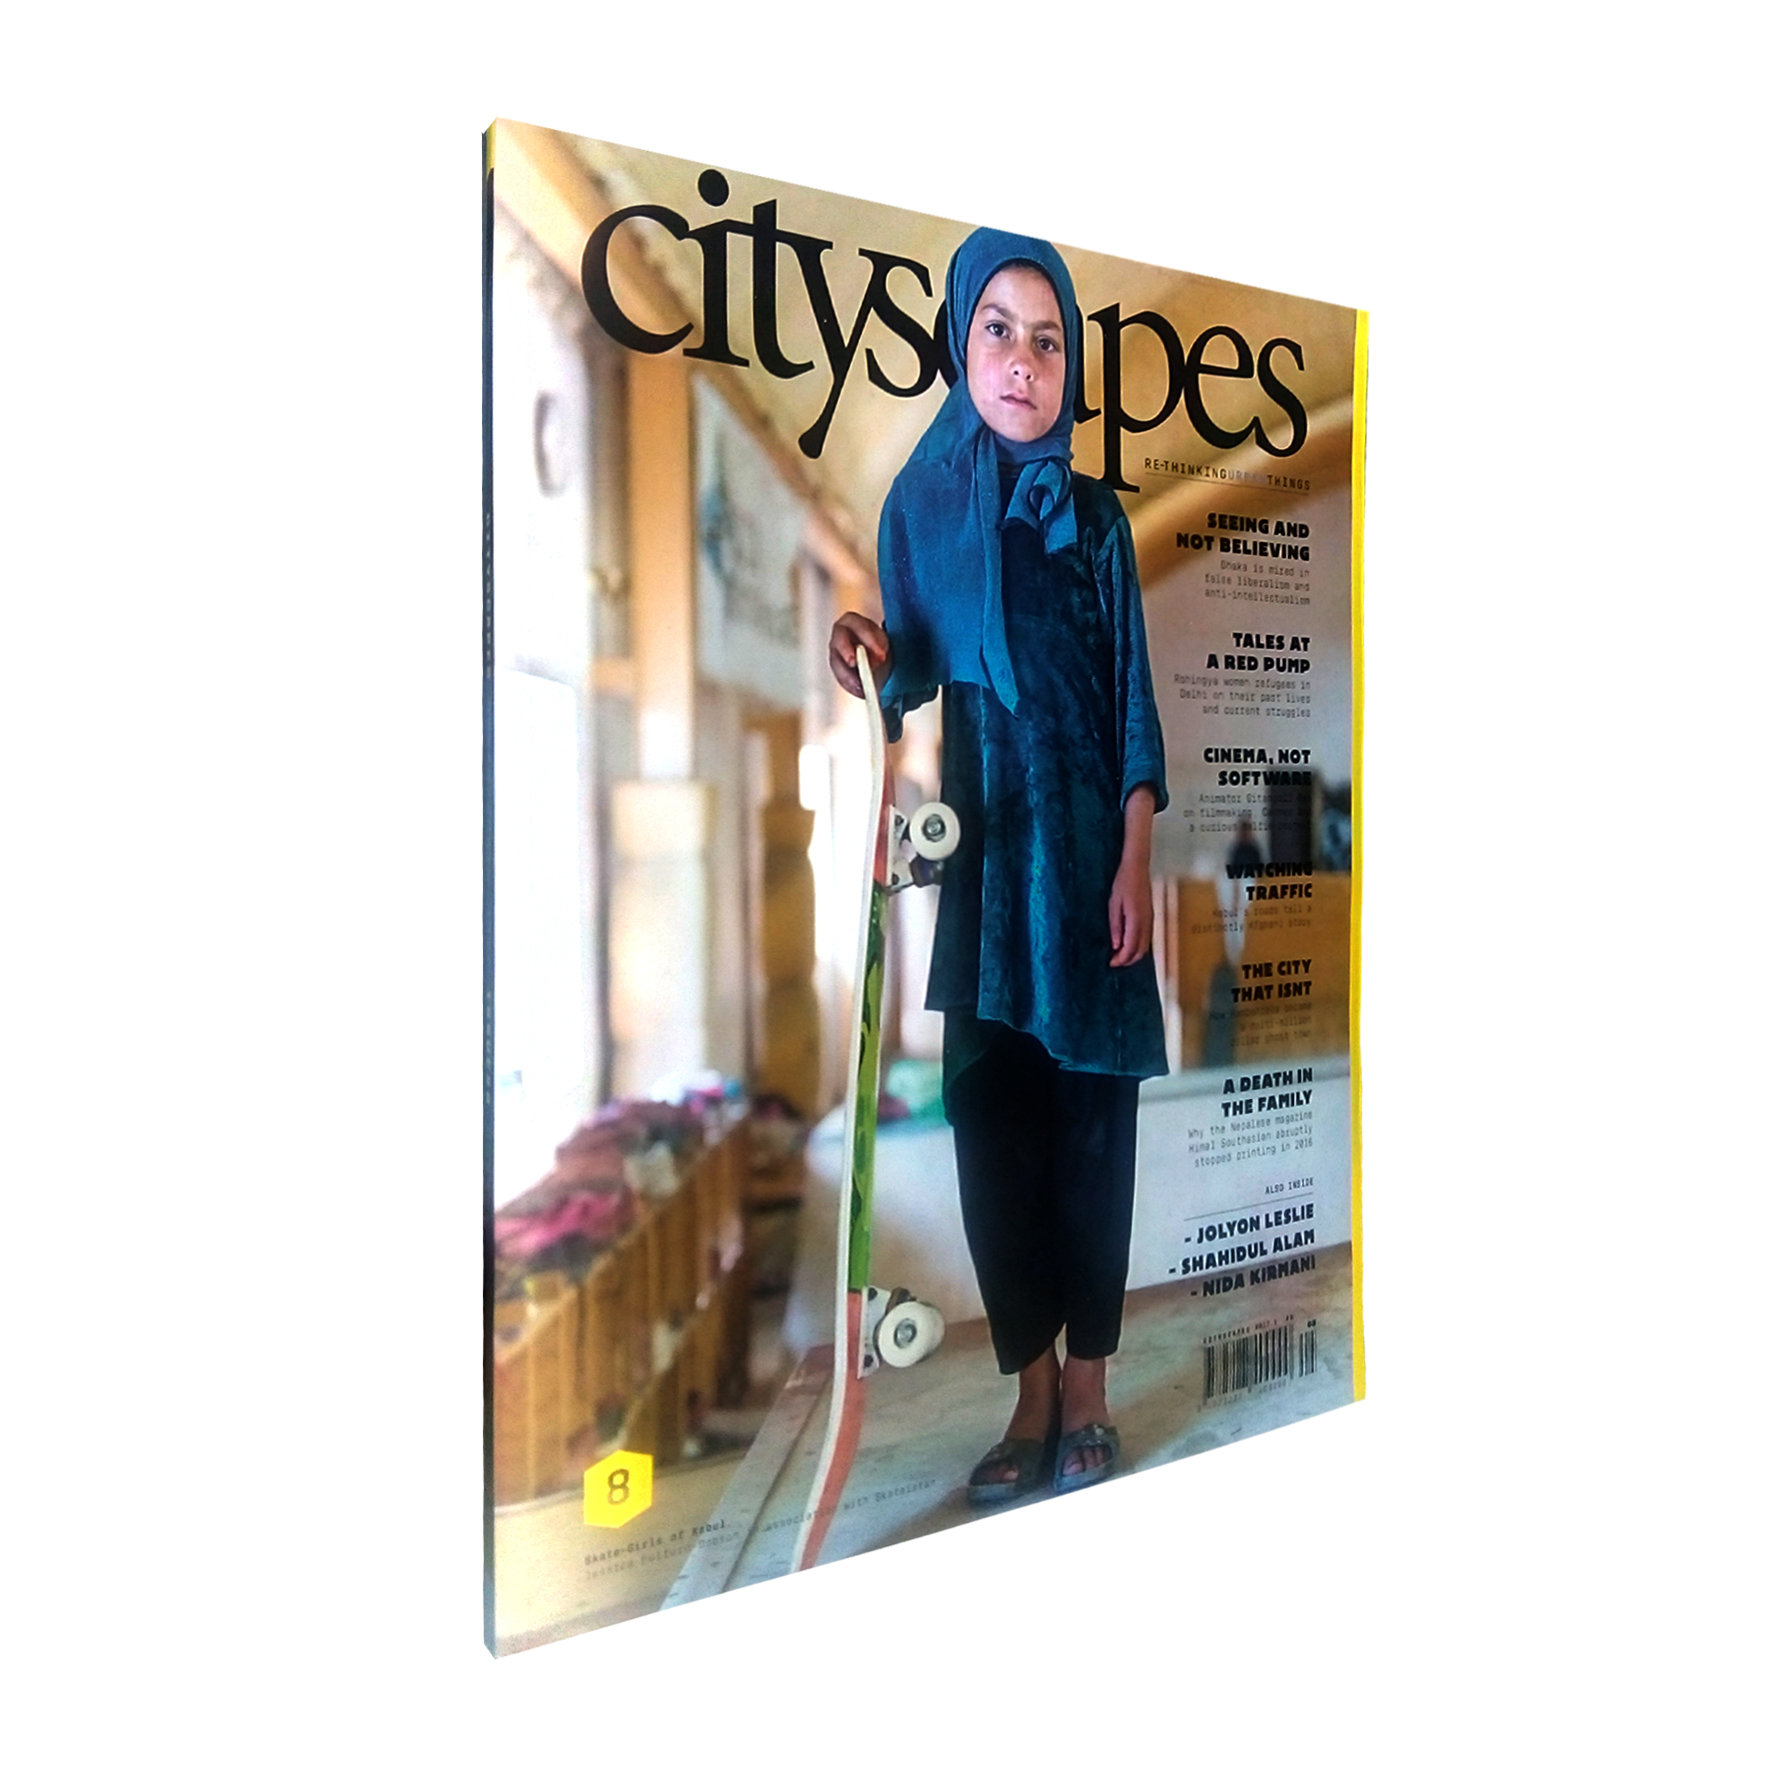 Cityscapes 8: Urban-South-Asia (Africa Centre for Cities, June 2017) CIR08